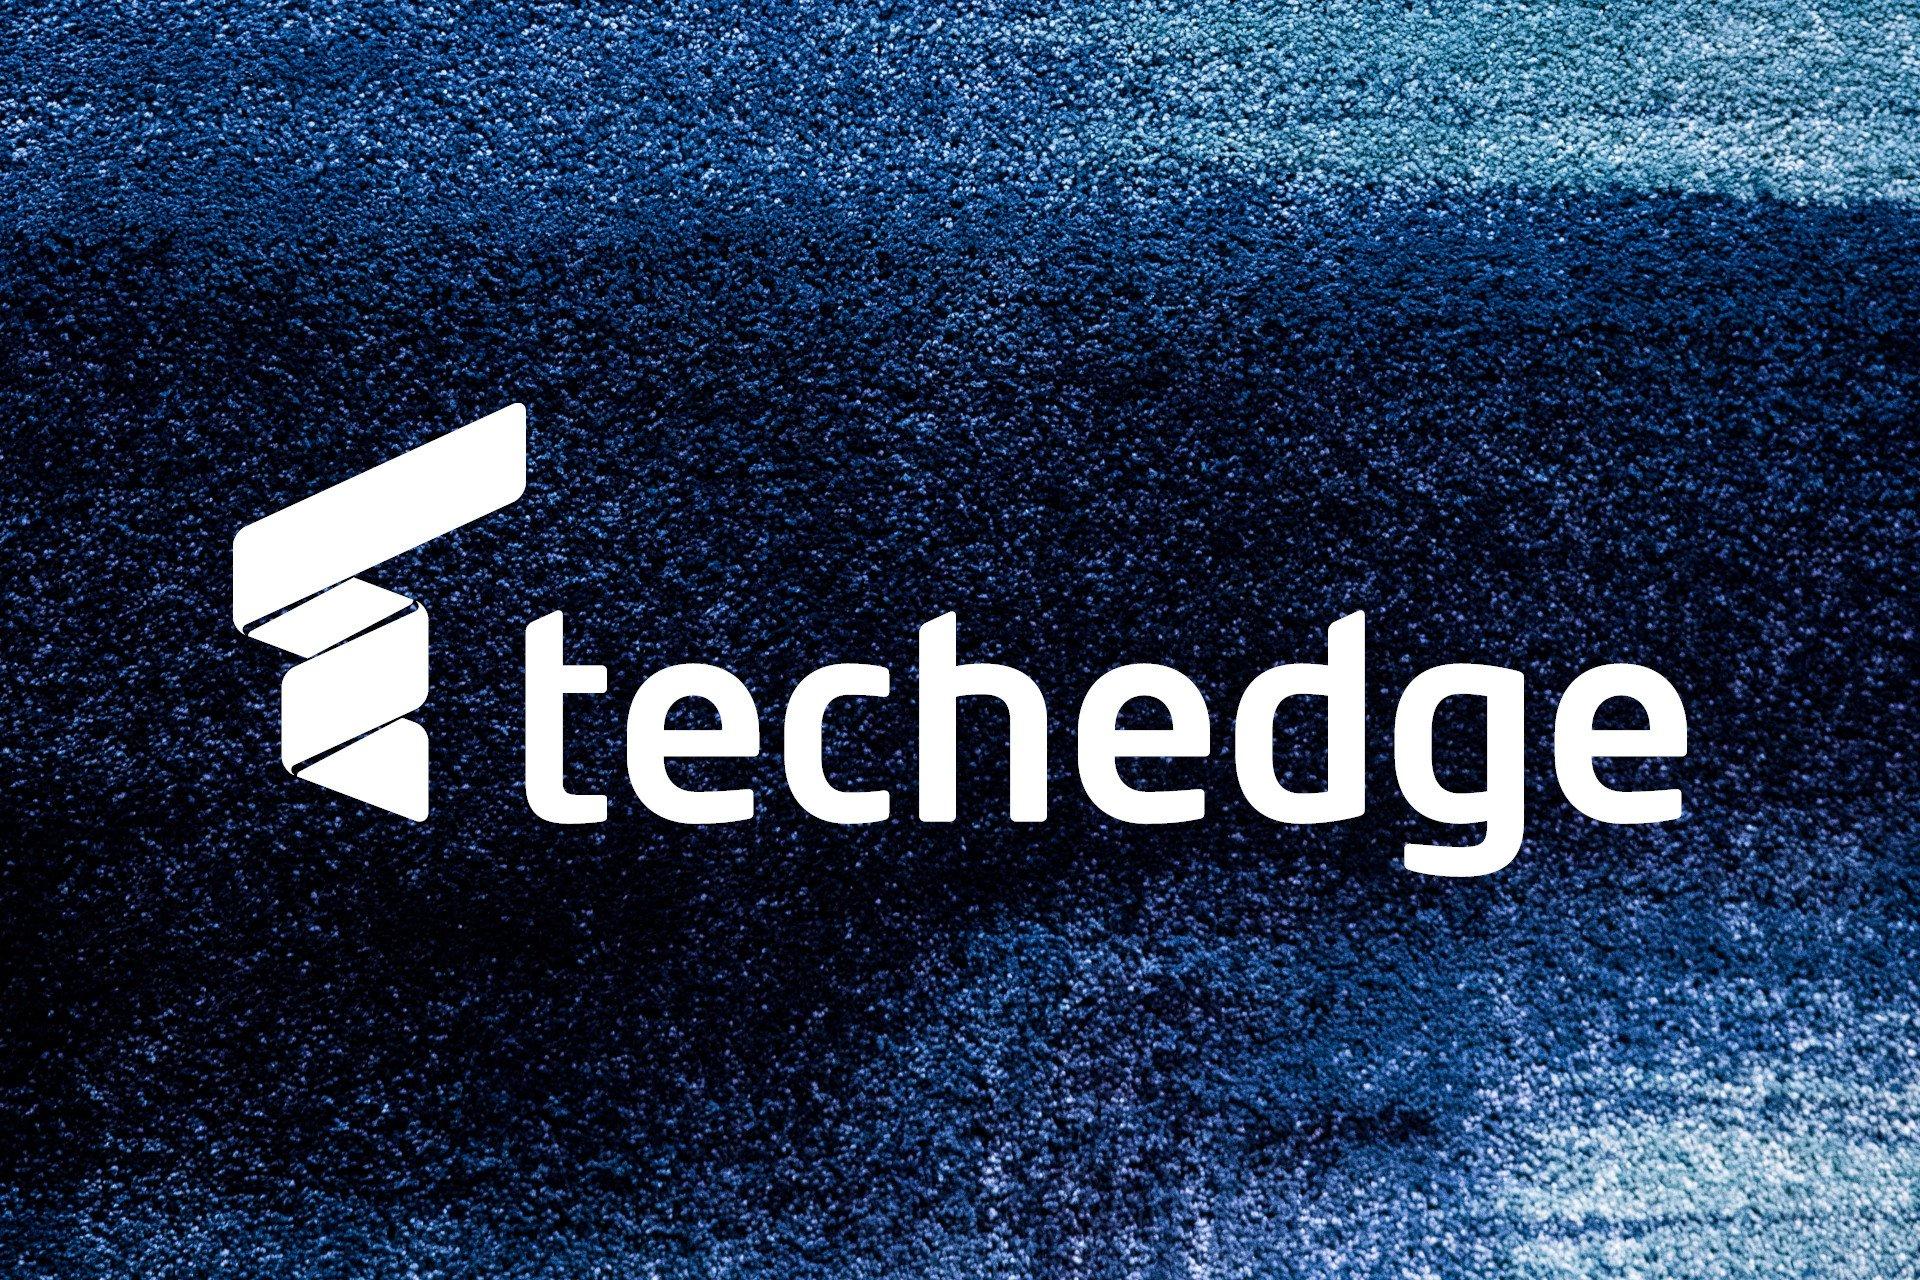 Techedge Group Appoints Vincenzo Giannelli as Corporate General Manager